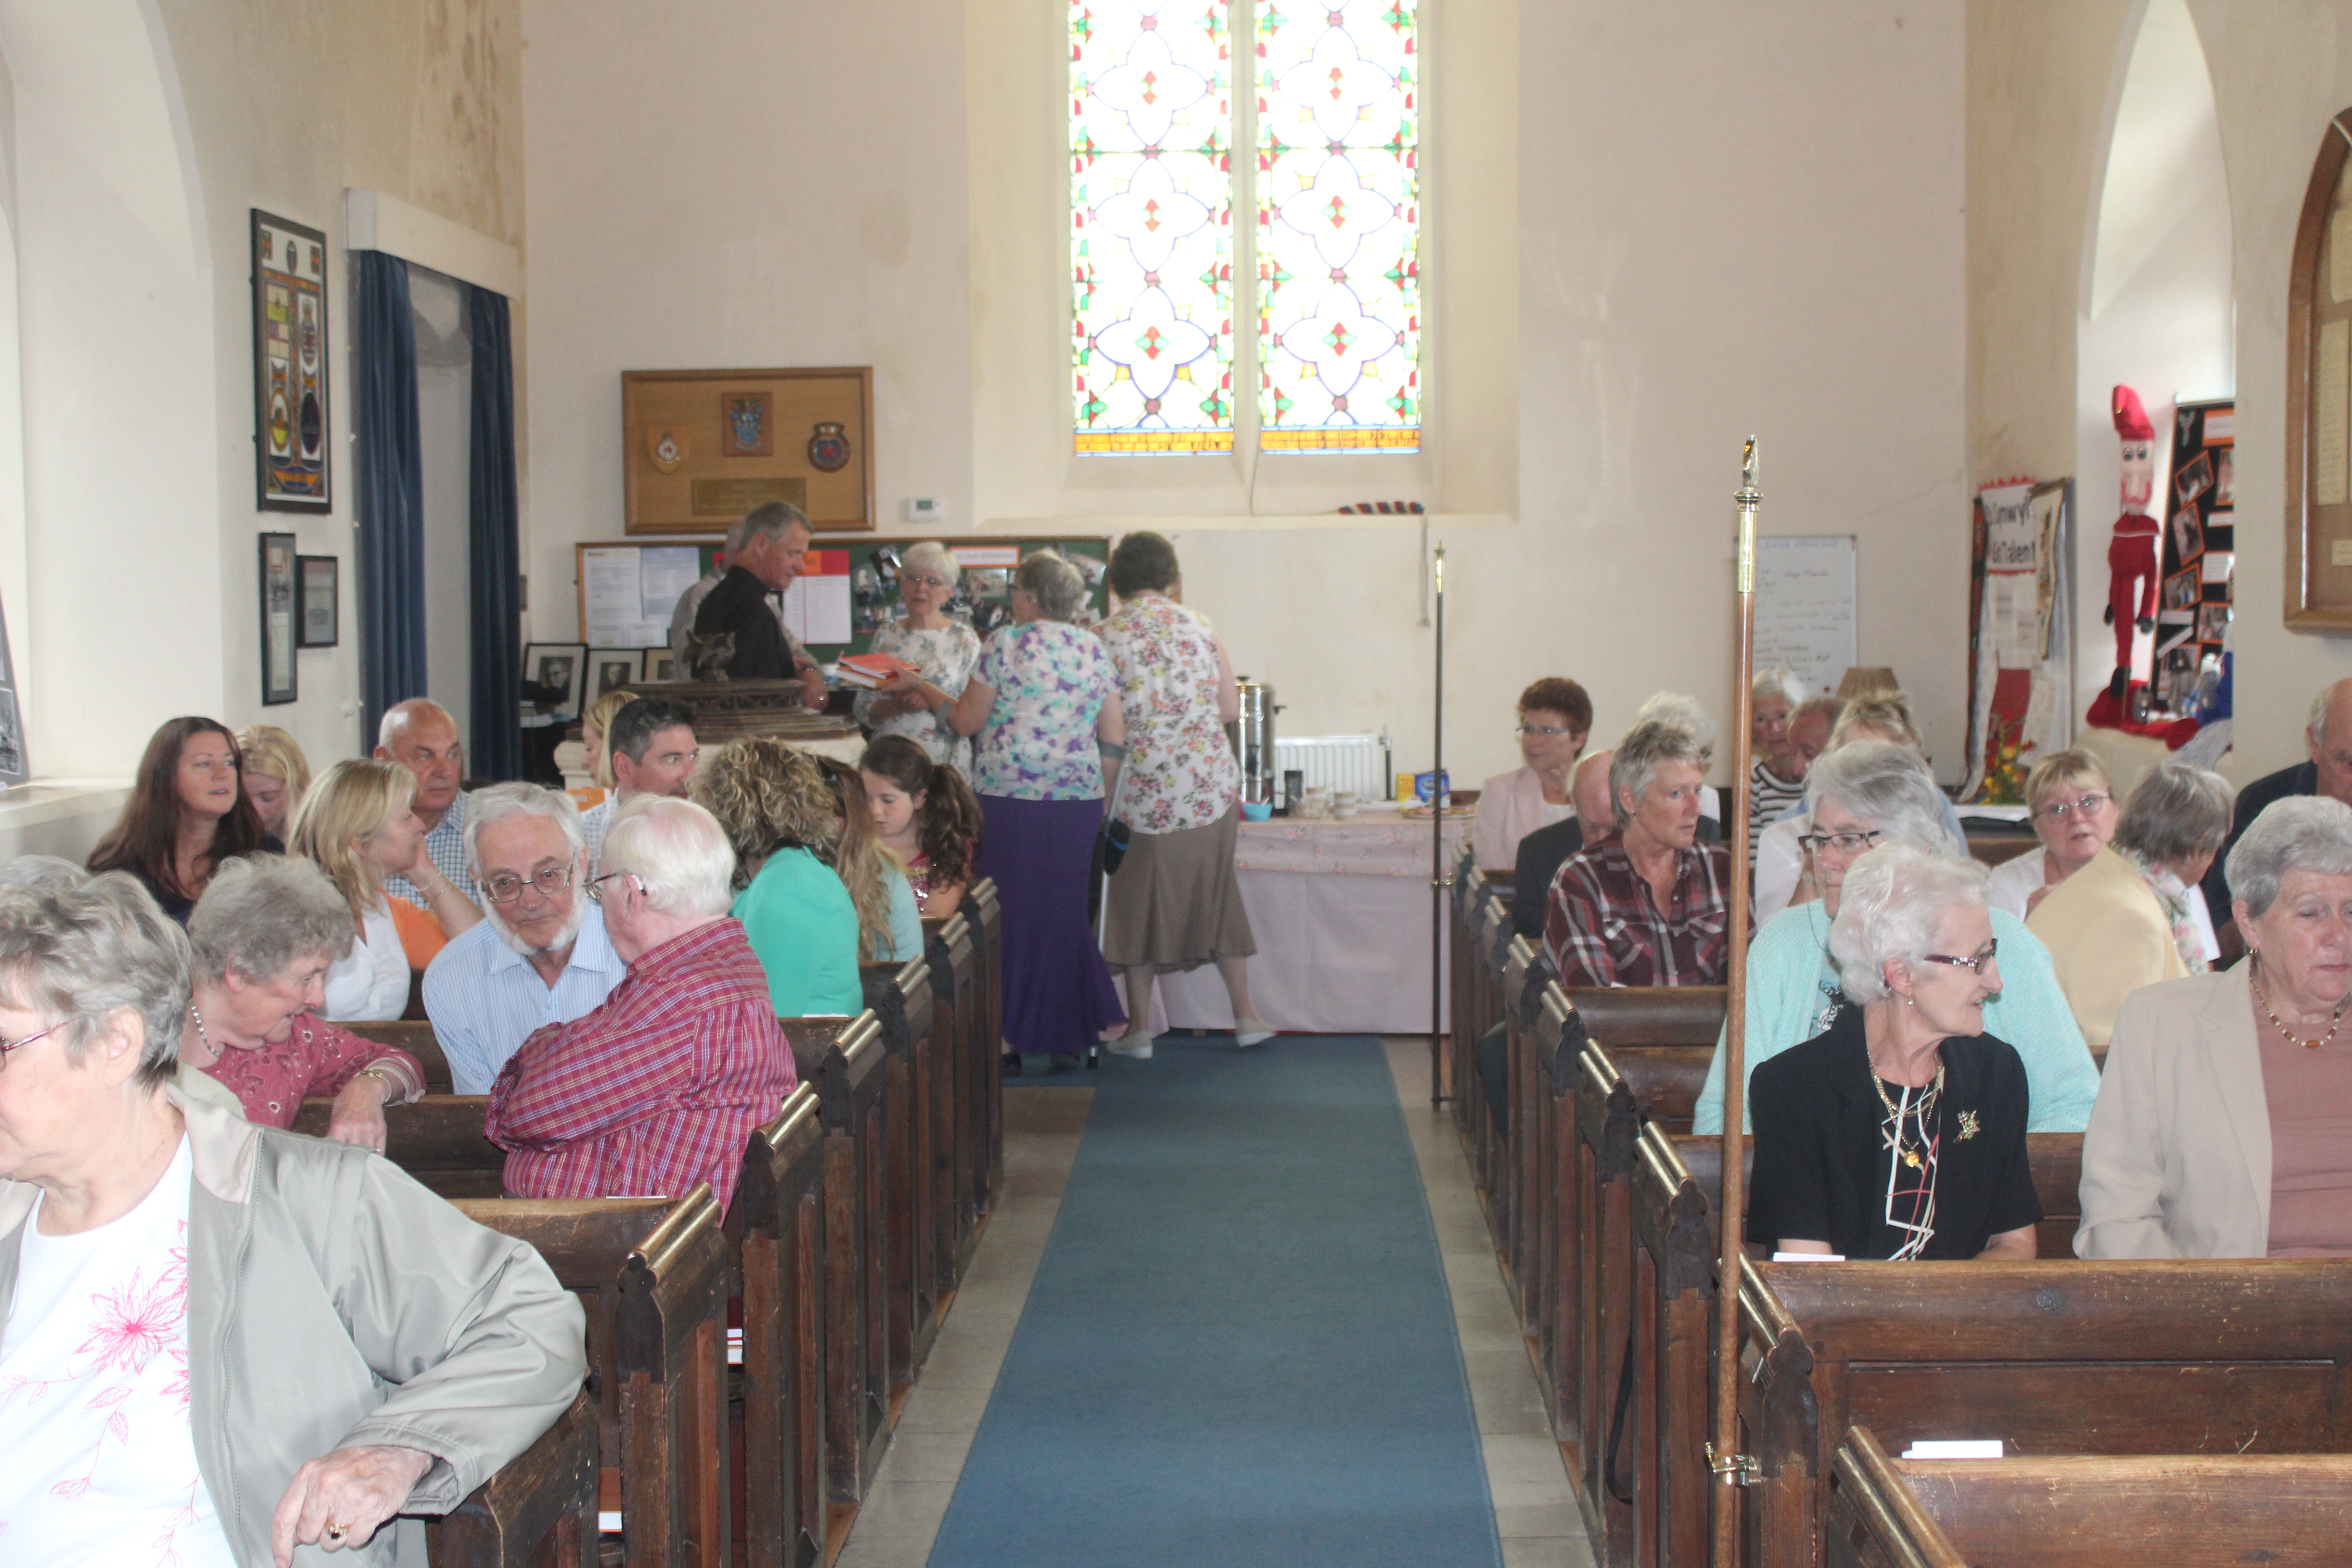 The church is full for the service